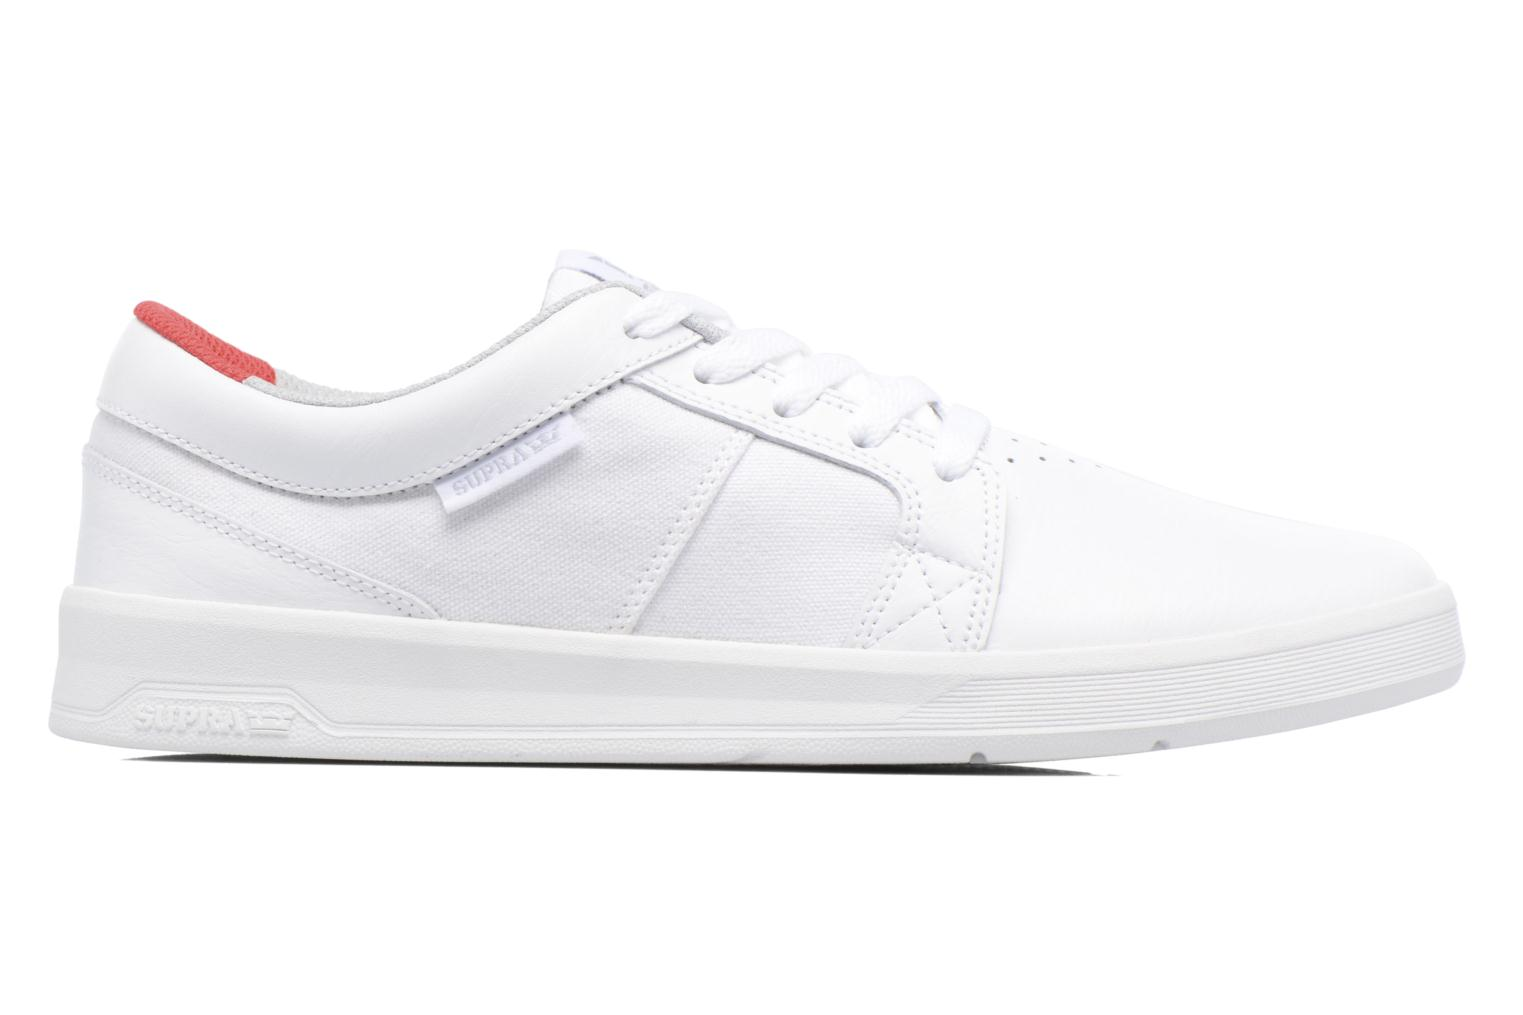 Ineto Chaussures Supra Blanches Chaussures Supra Supra Blanches Ineto mnN80vw